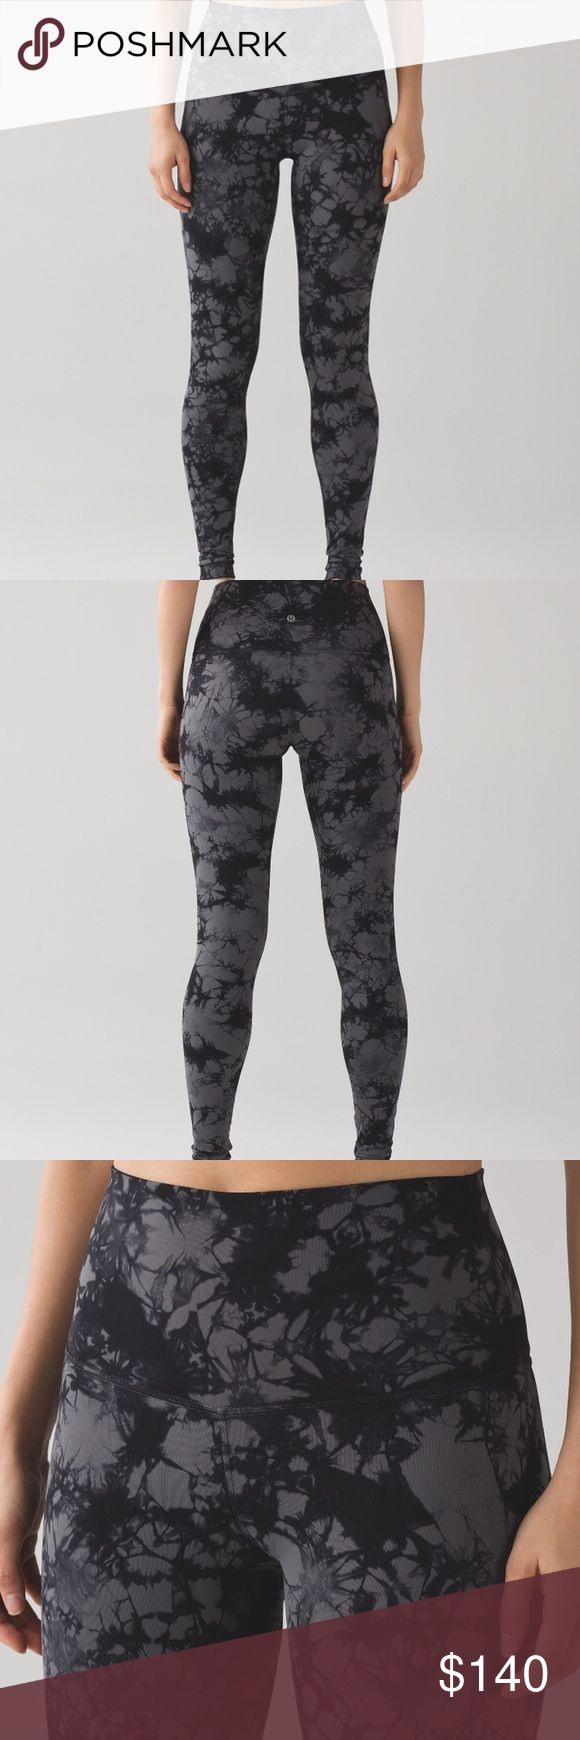 Lululemon wunder under leggings Not for sale at the moment just updating my closet. Size 4 sold out online. DO NOT PURCHASE lululemon athletica Pants